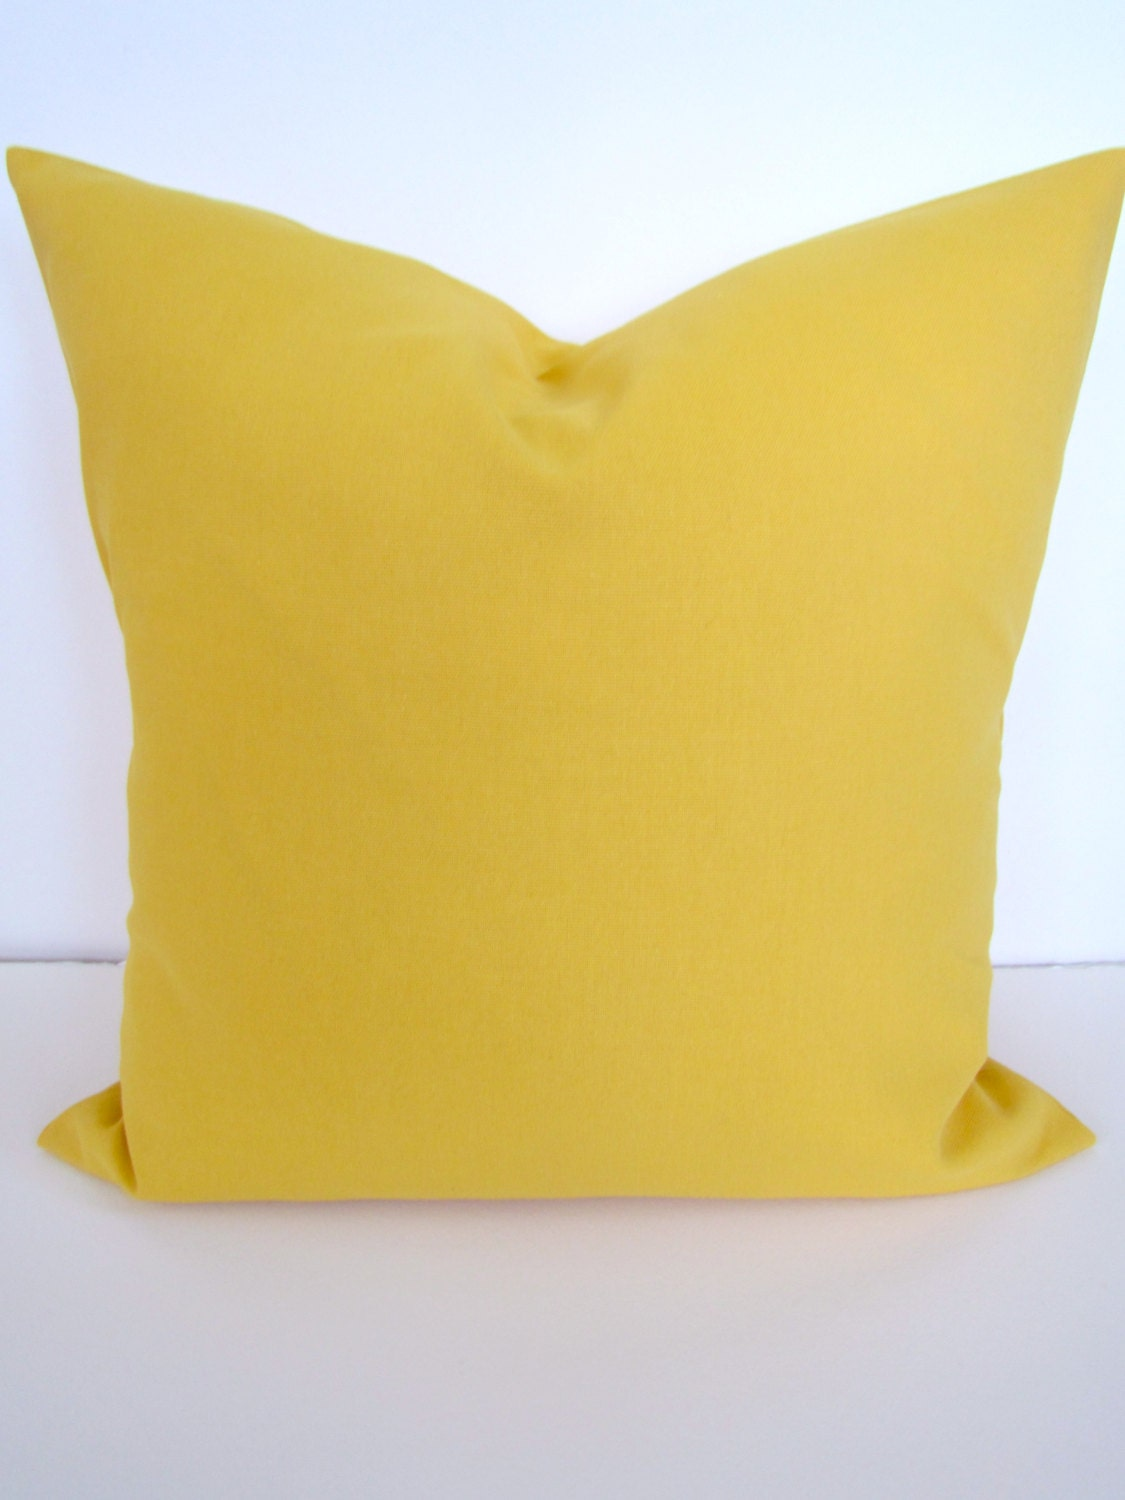 Throw Pillow Covers Yellow : YELLOW PILLOWS YELLOW Pillow Covers Solid Yellow Throw Pillows